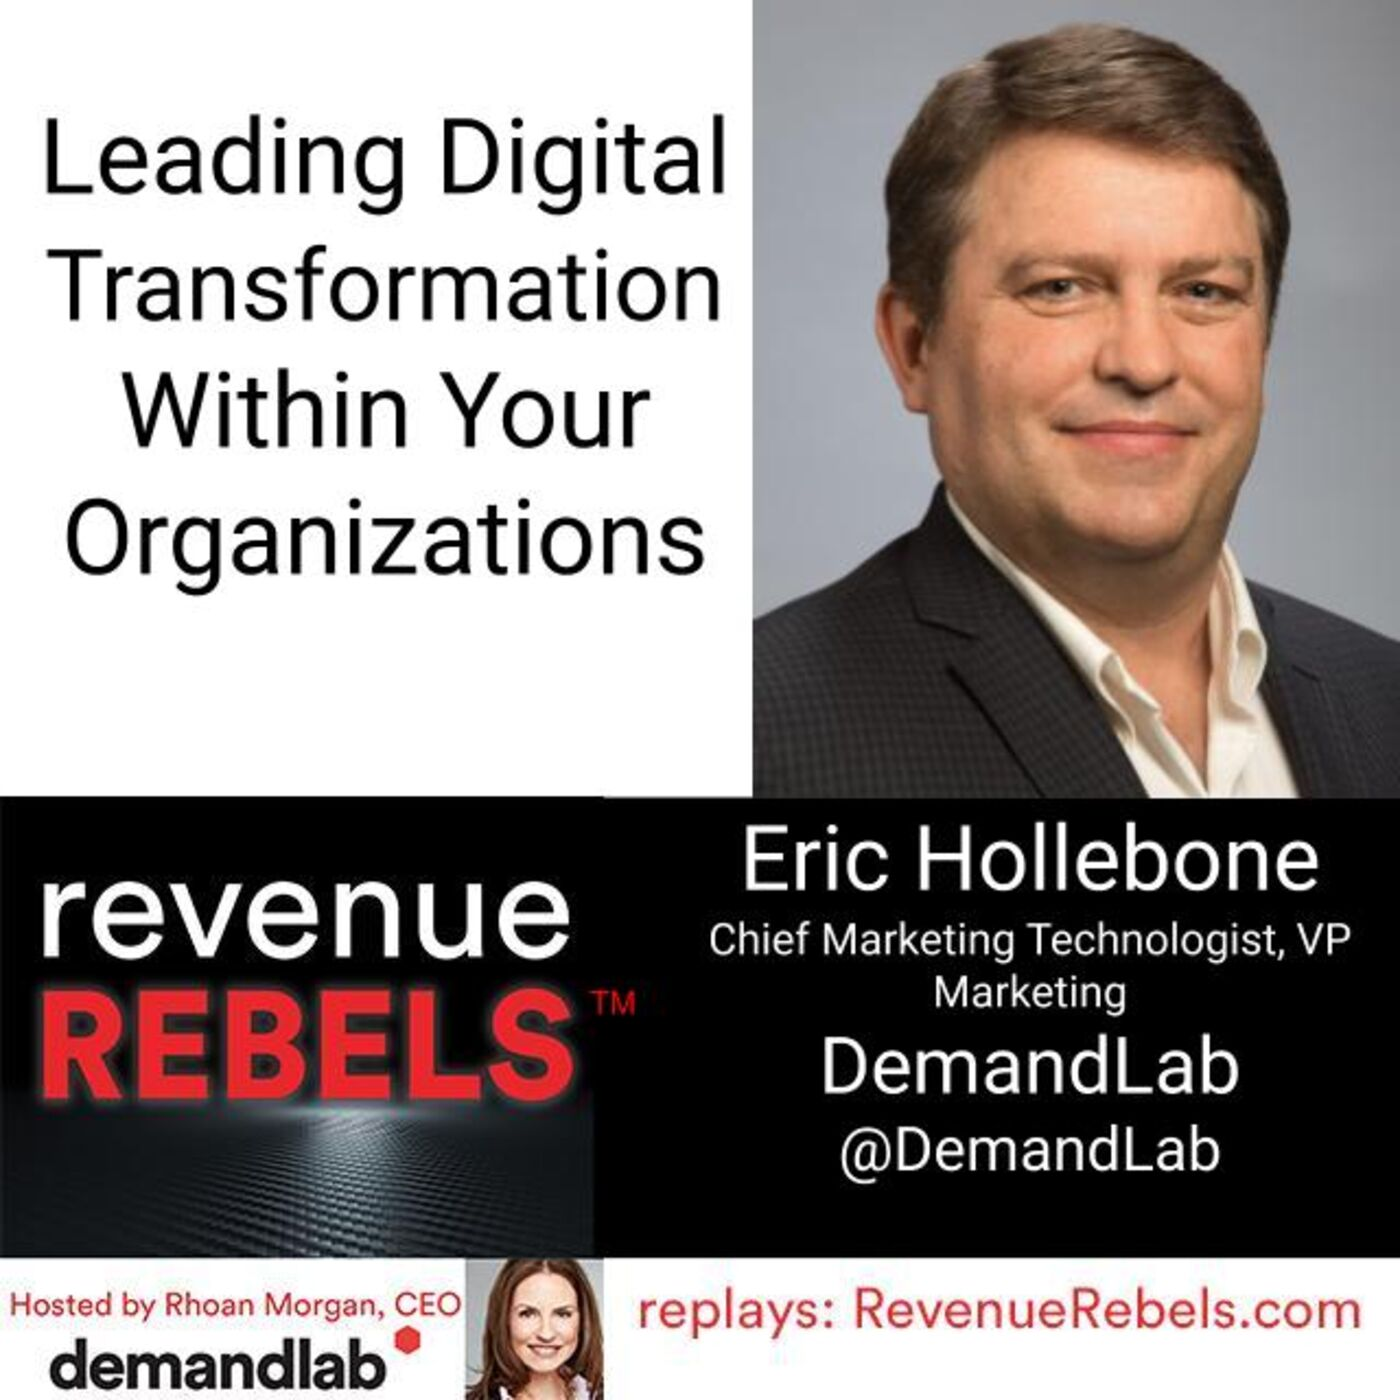 Leading Digital Transformation Within Your Organizations